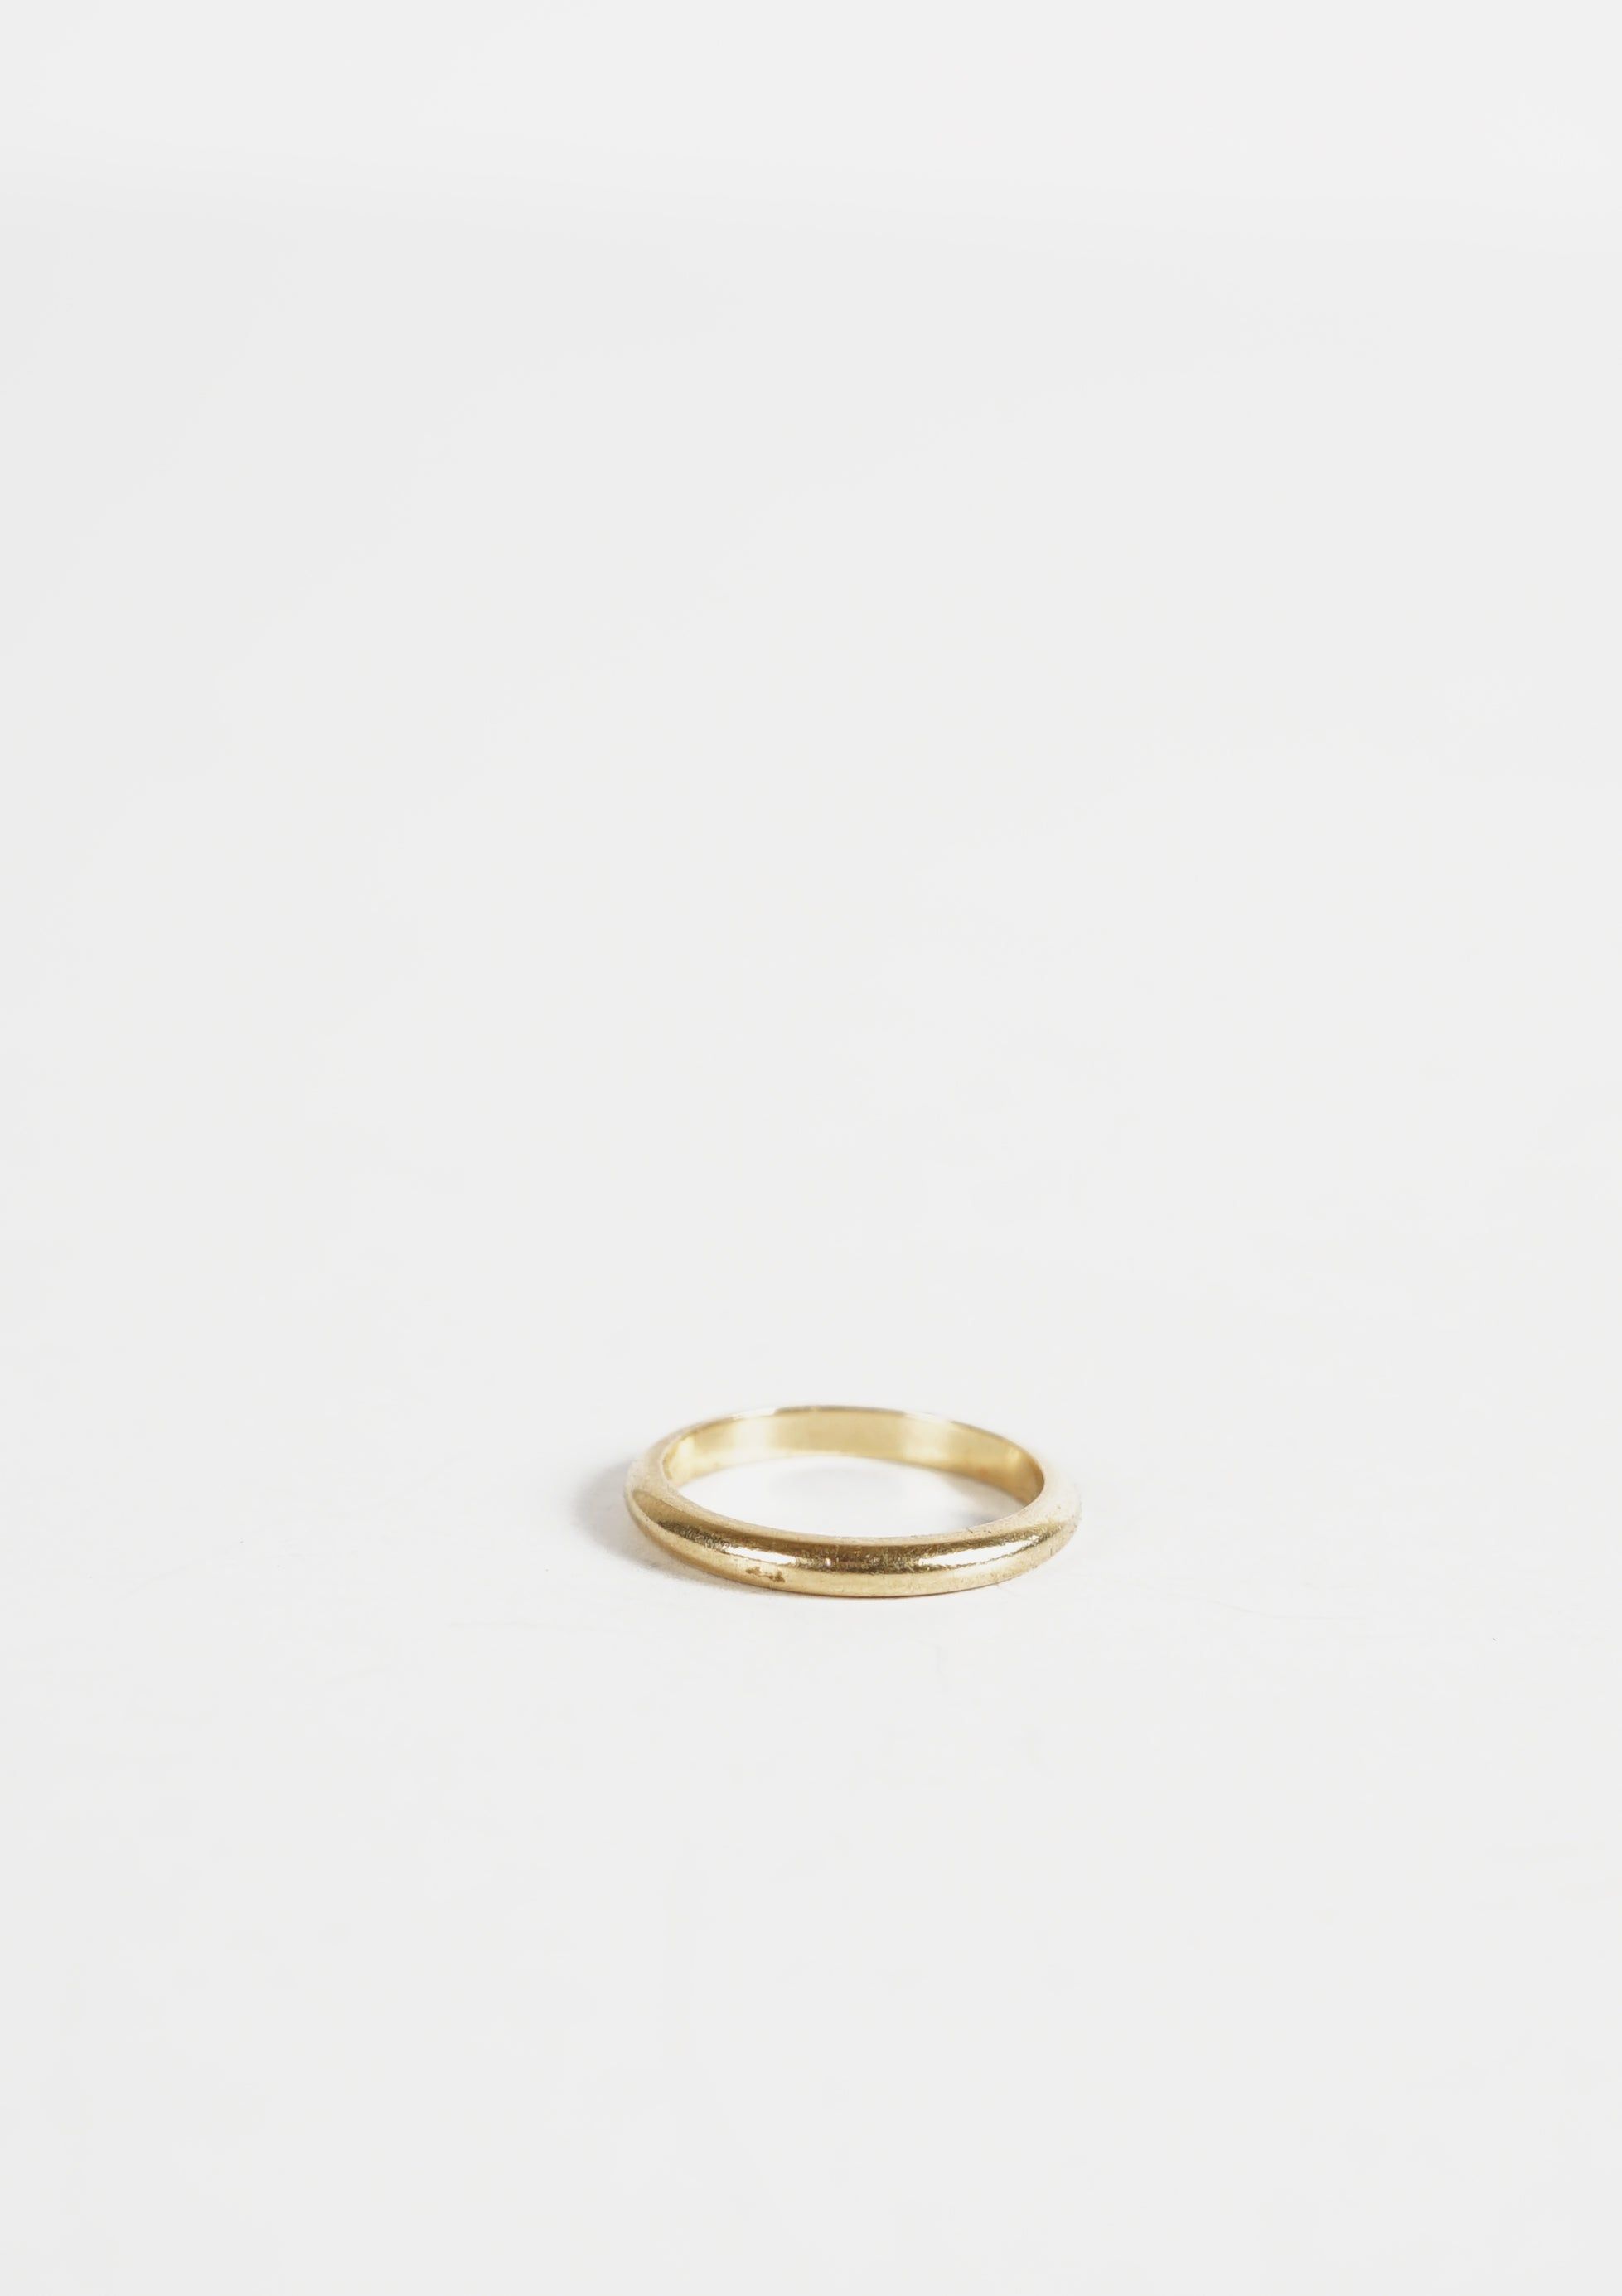 14k Solid Gold Ring / 2mm